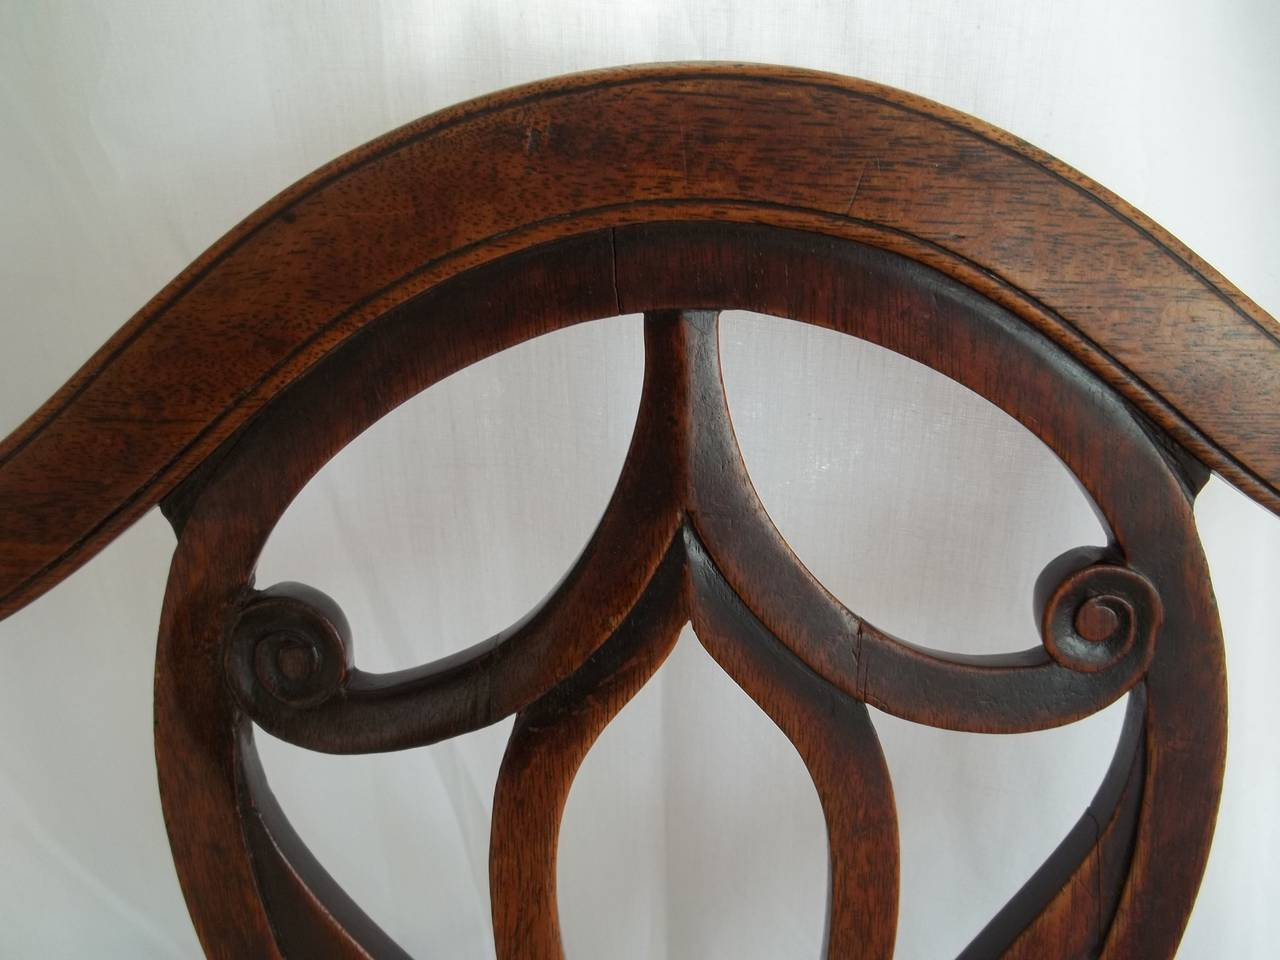 Elegant 18th Century Hepplewhite Side Chair in Mahogany, English circa 1785 In Good Condition For Sale In Lincoln, Lincolnshire